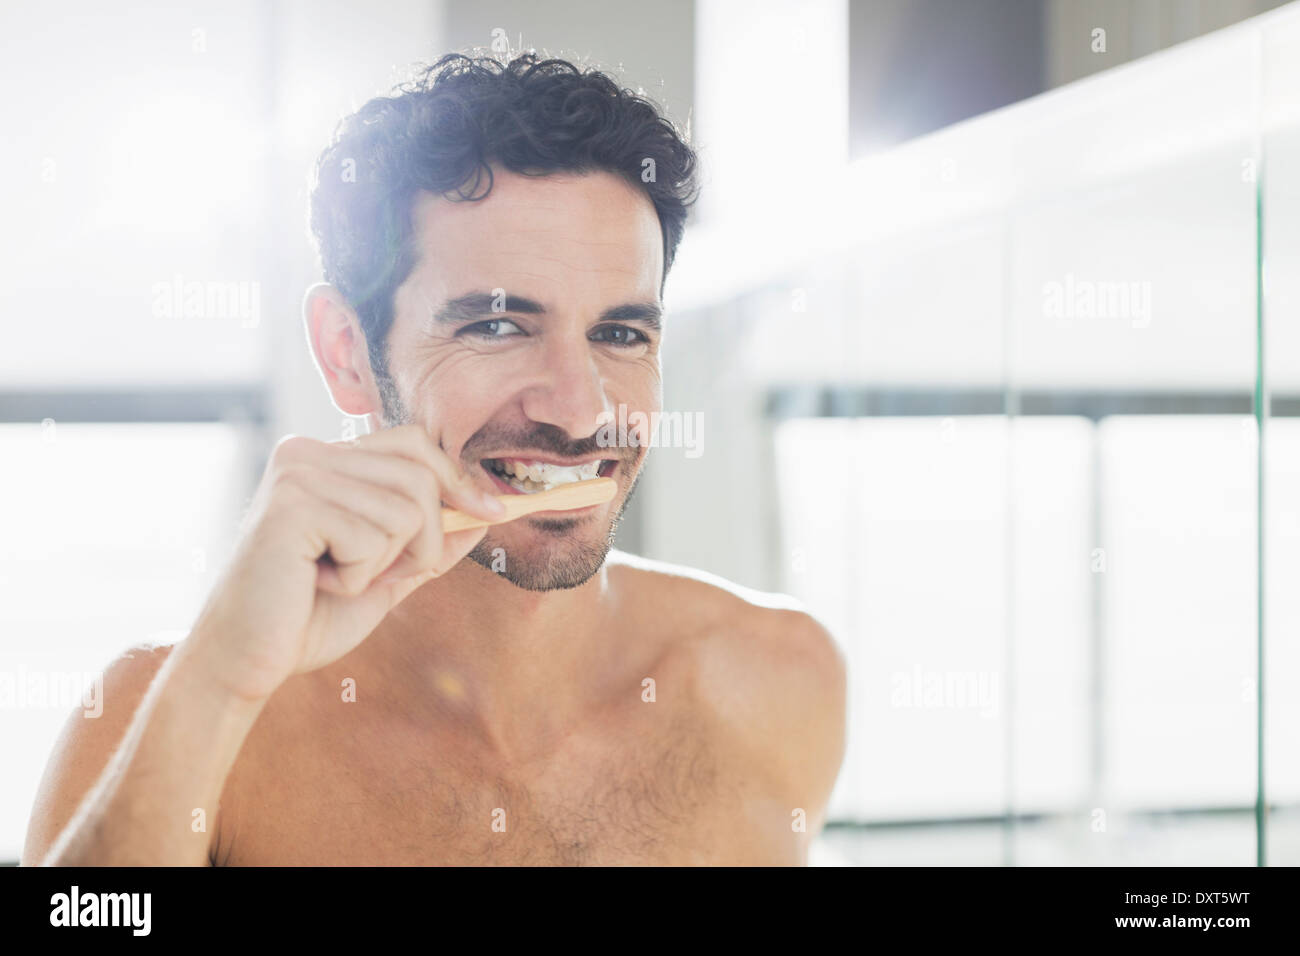 Portrait of man brushing teeth - Stock Image